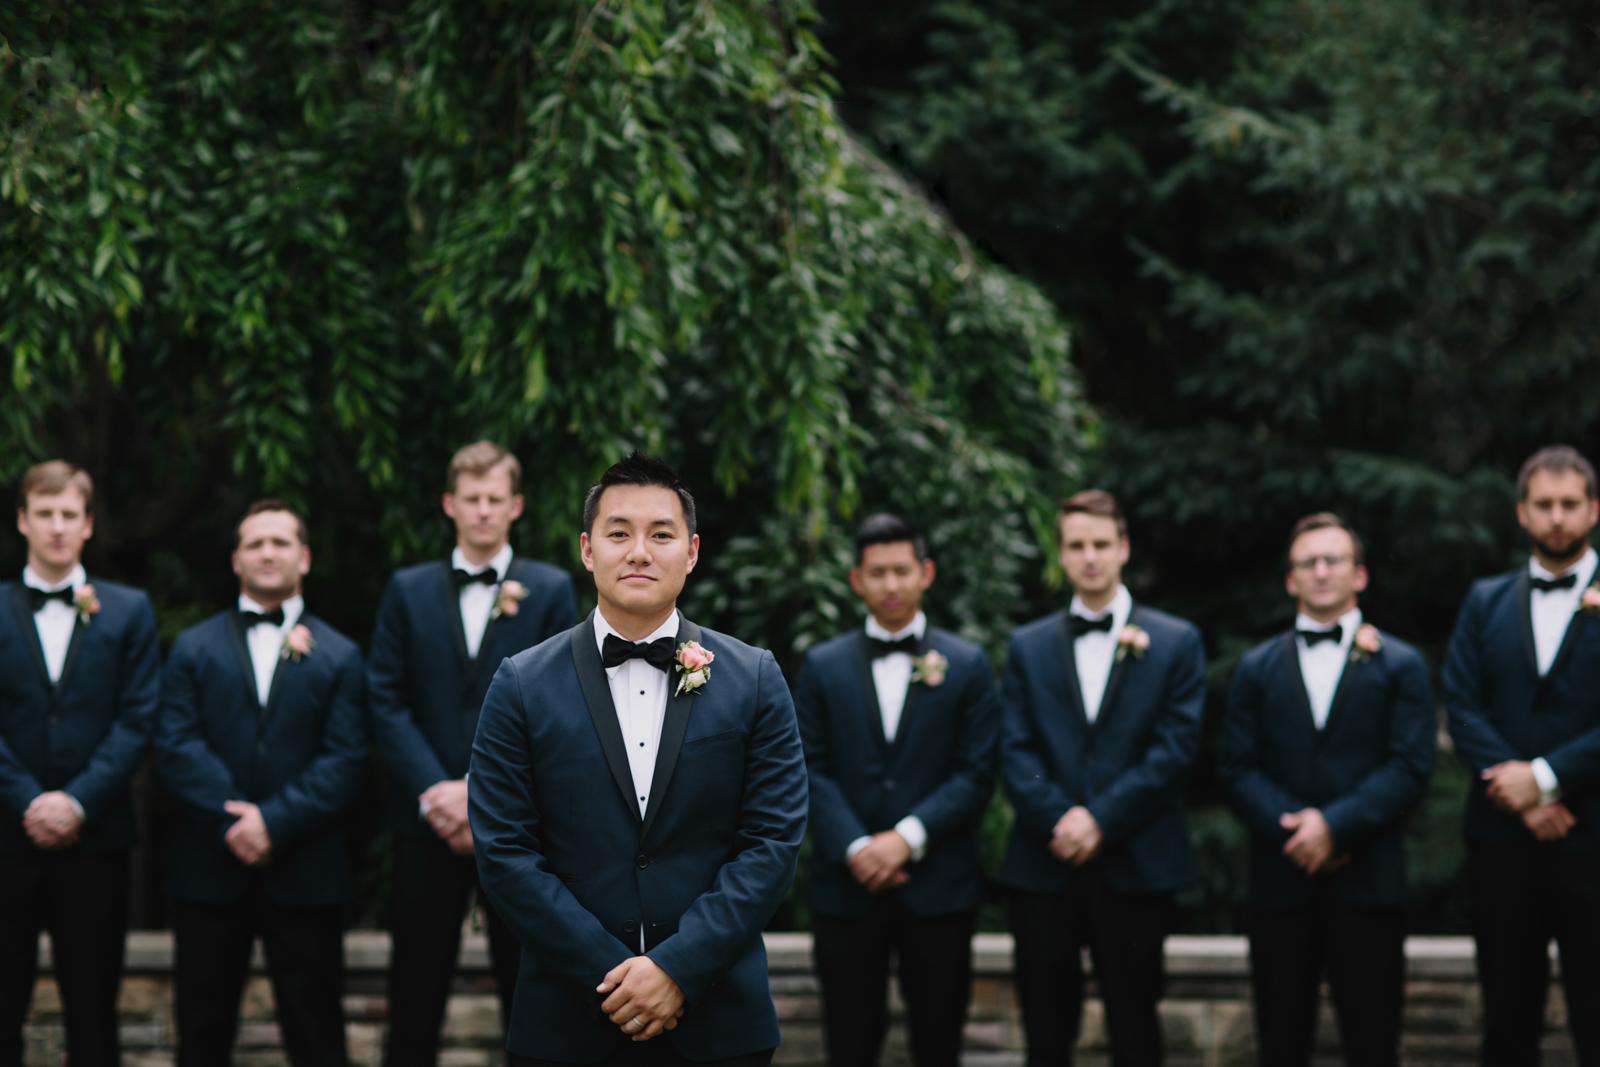 Fountain-Street-Church-and-Urban-Institute-of-Contemporary-Arts-Wedding-Kirstin-and-Khoi-012.jpg